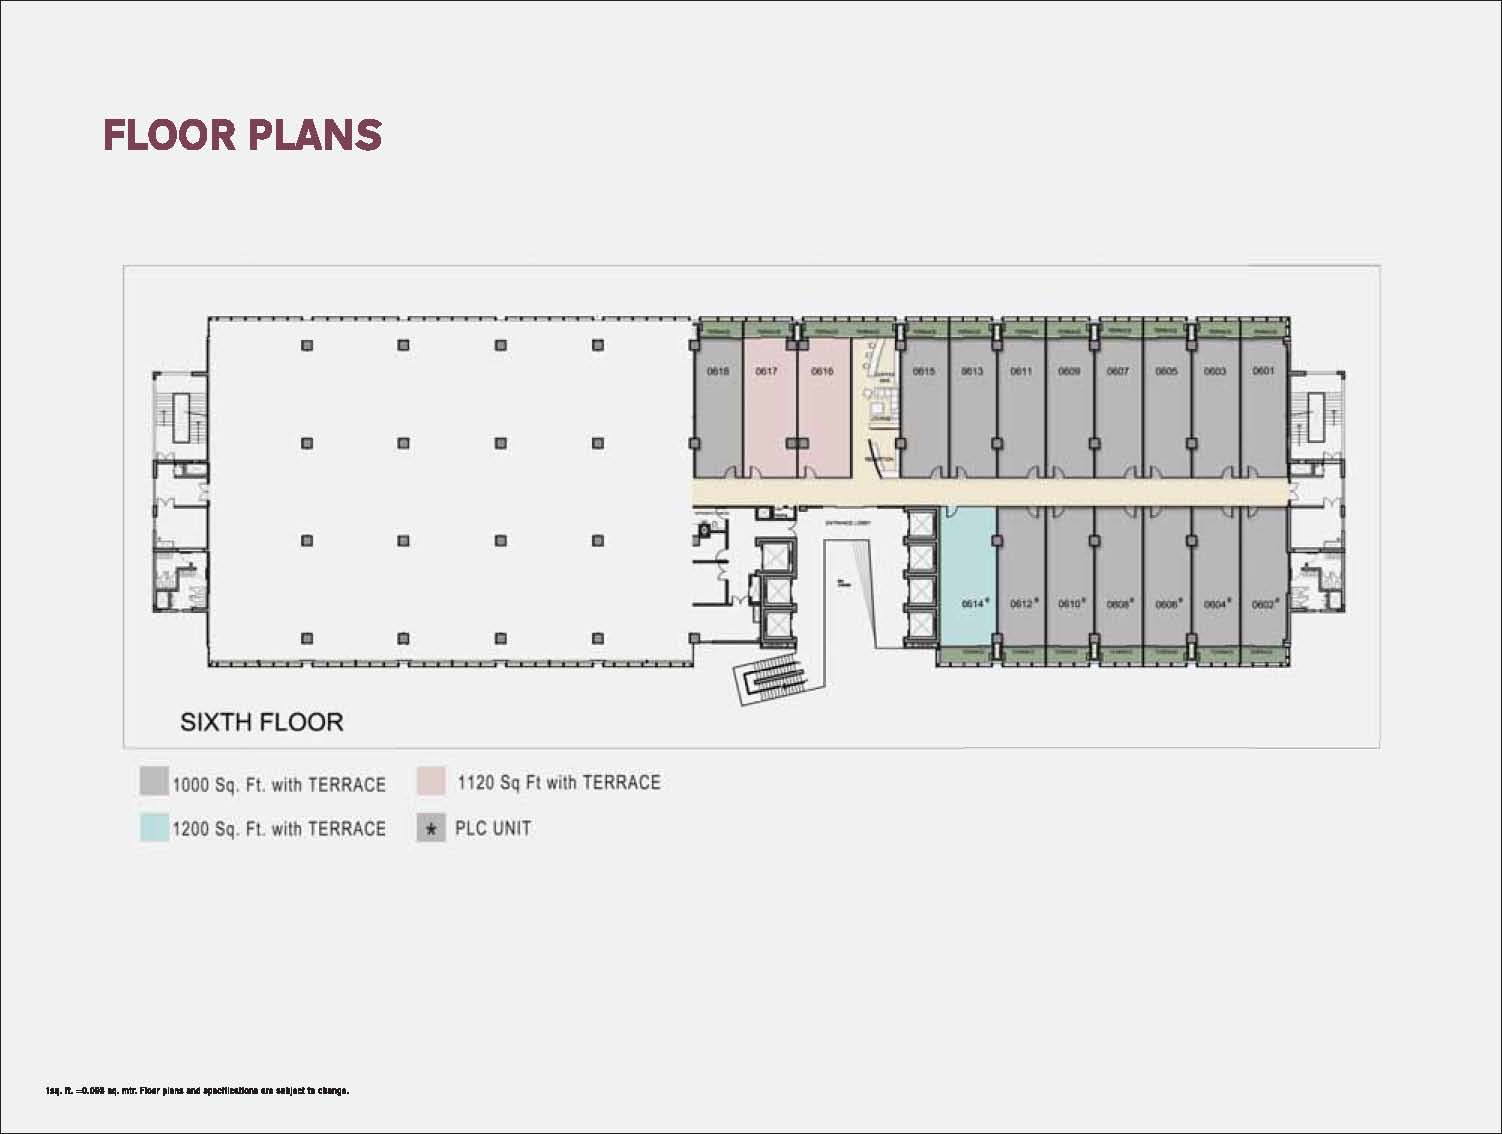 wtc noida floor plan of 6th floor